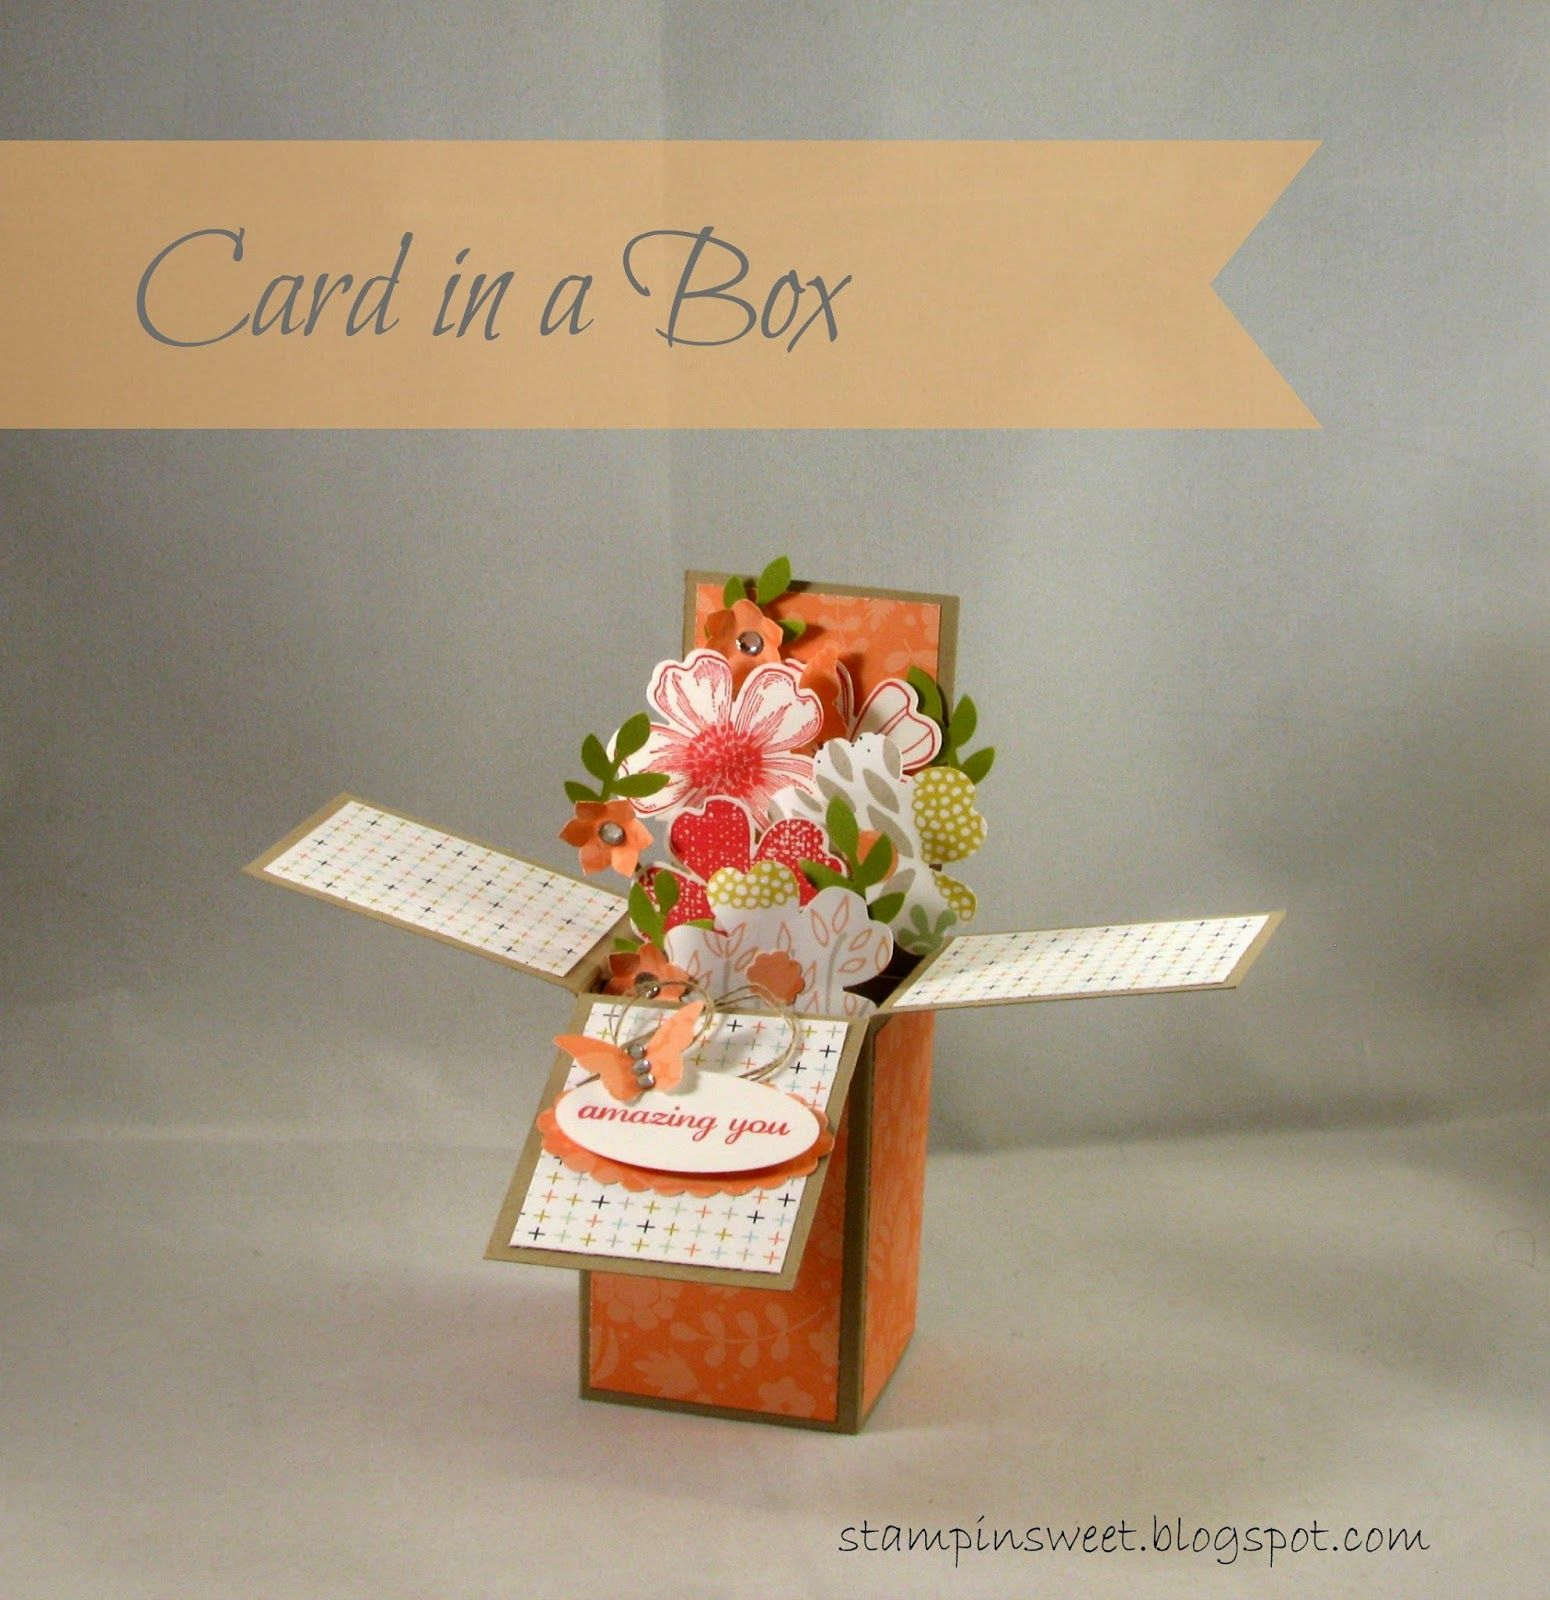 Card in a Box - Stampin Up